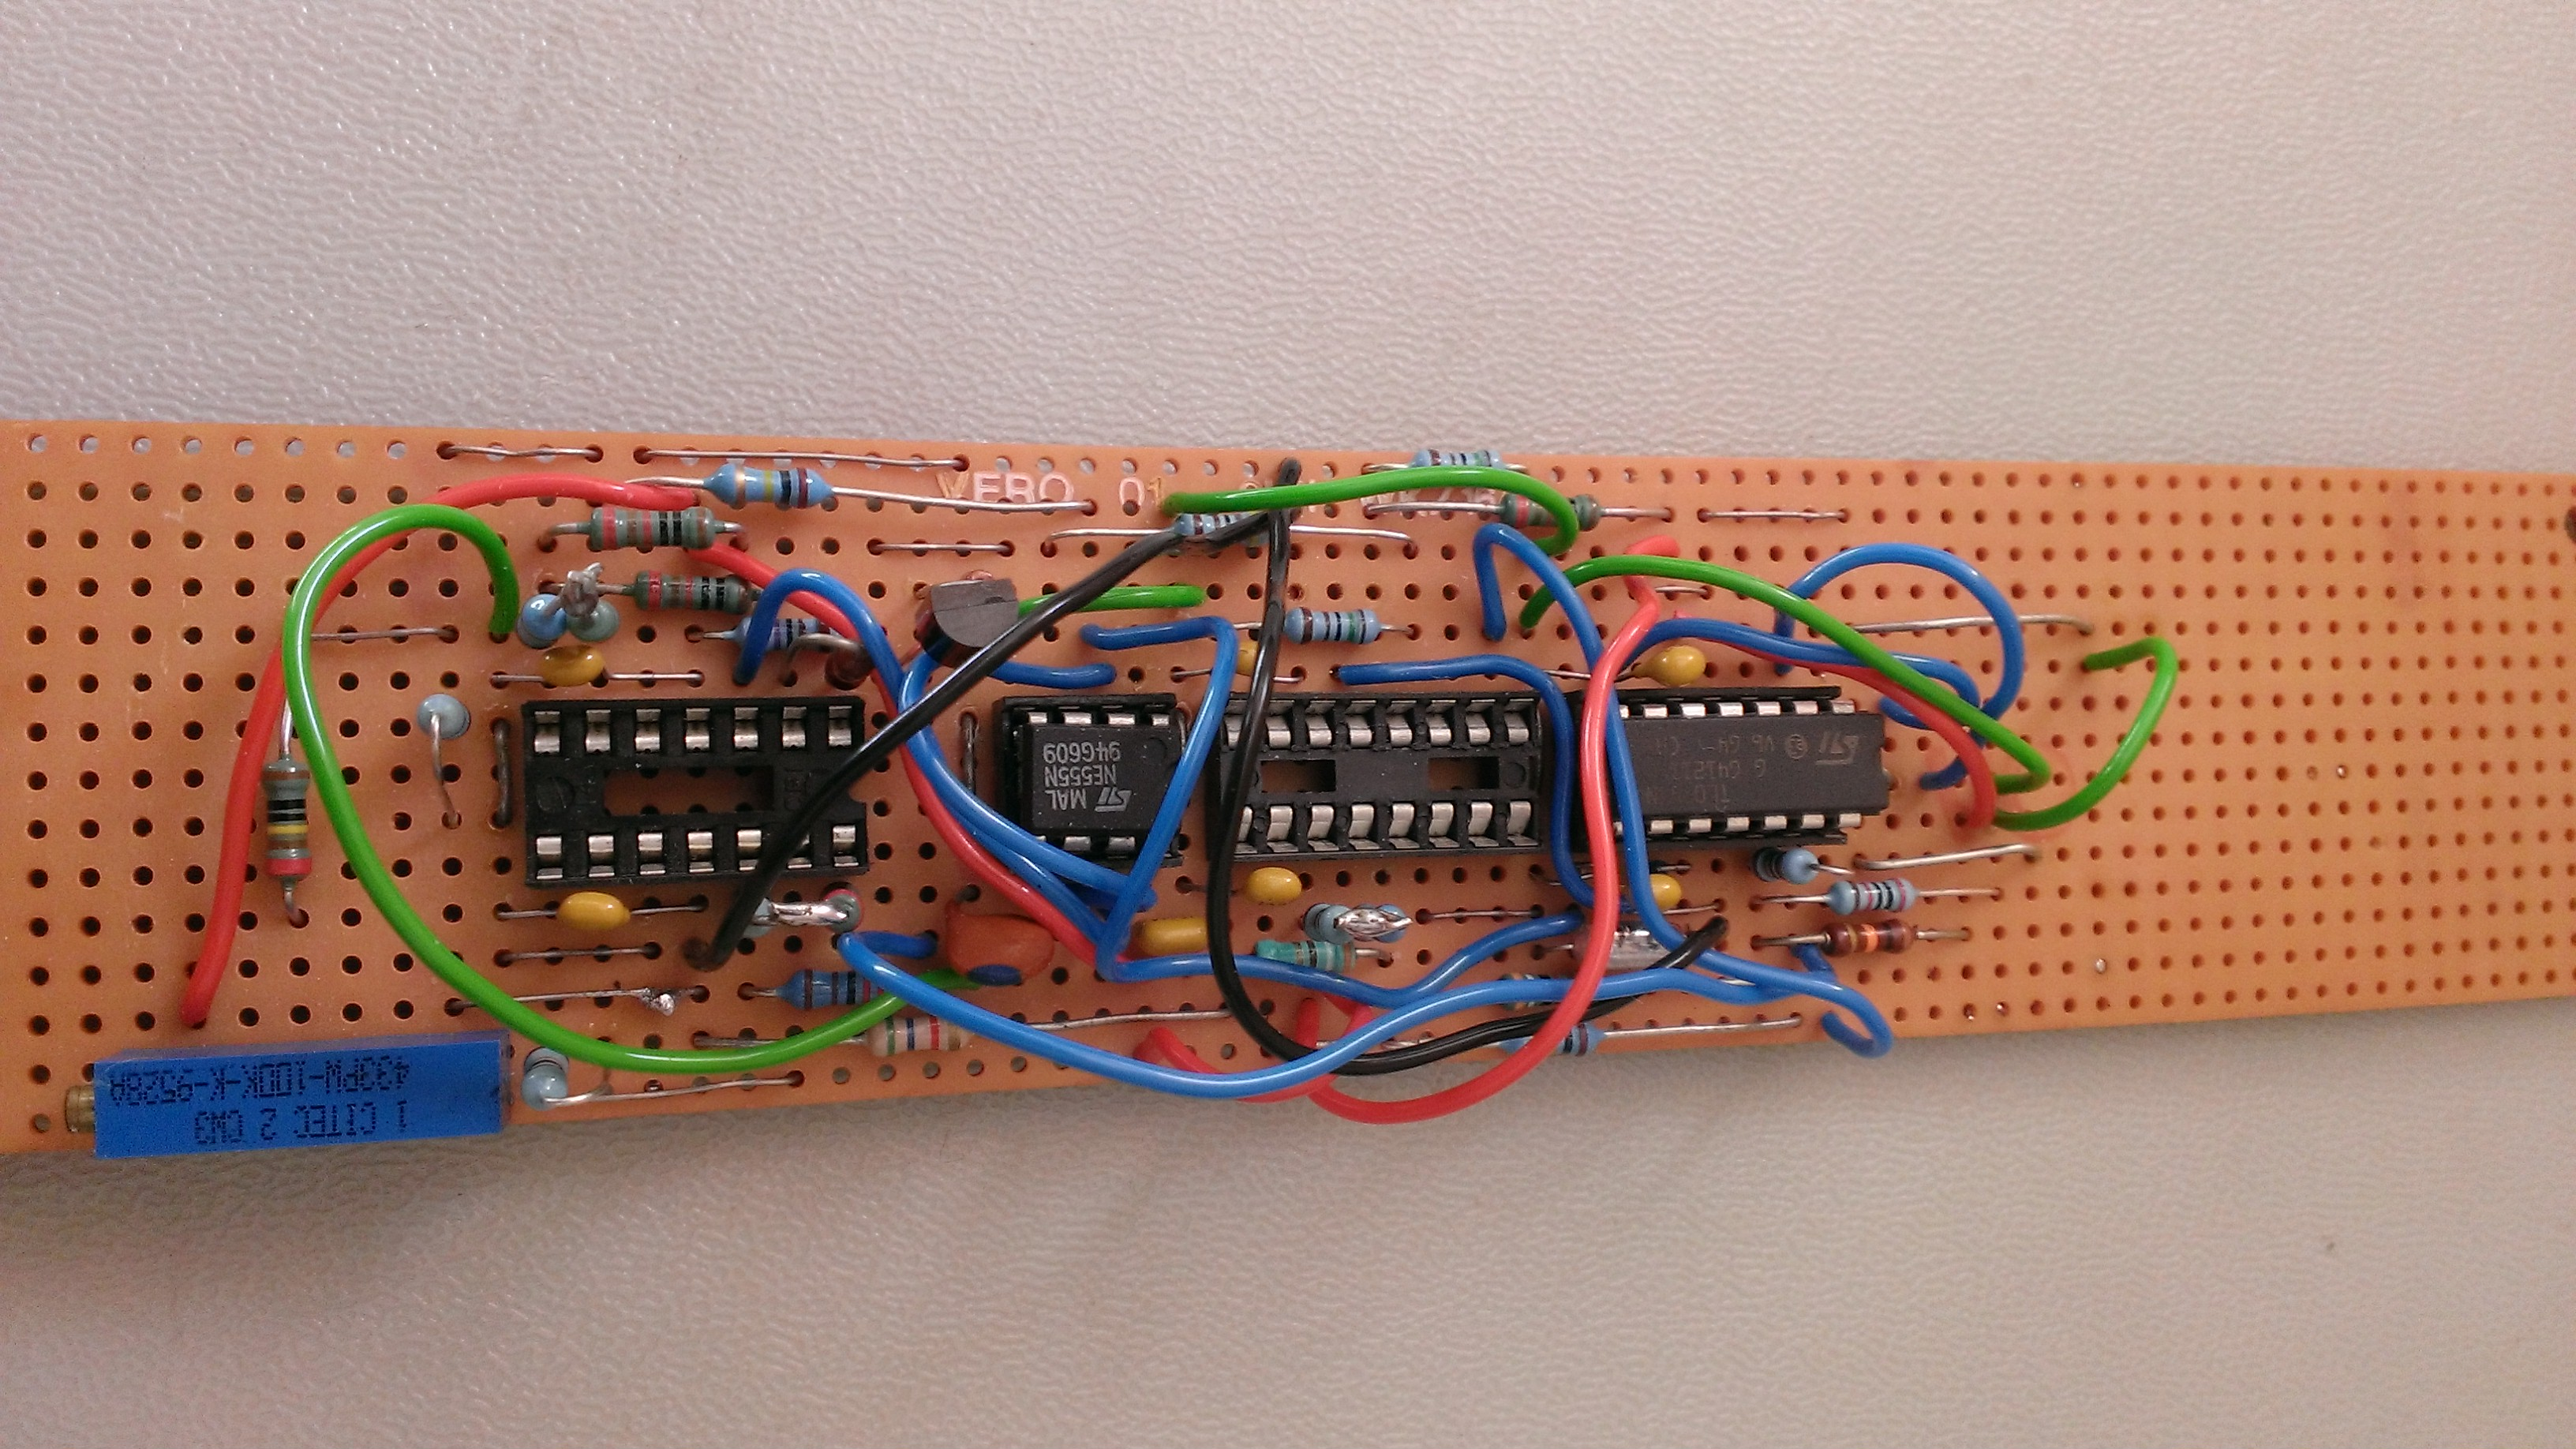 Voltage Controlled Oscillator Based On The Cmos 555 Timer Circuit Diagram Thomas Henry Vco Not Working